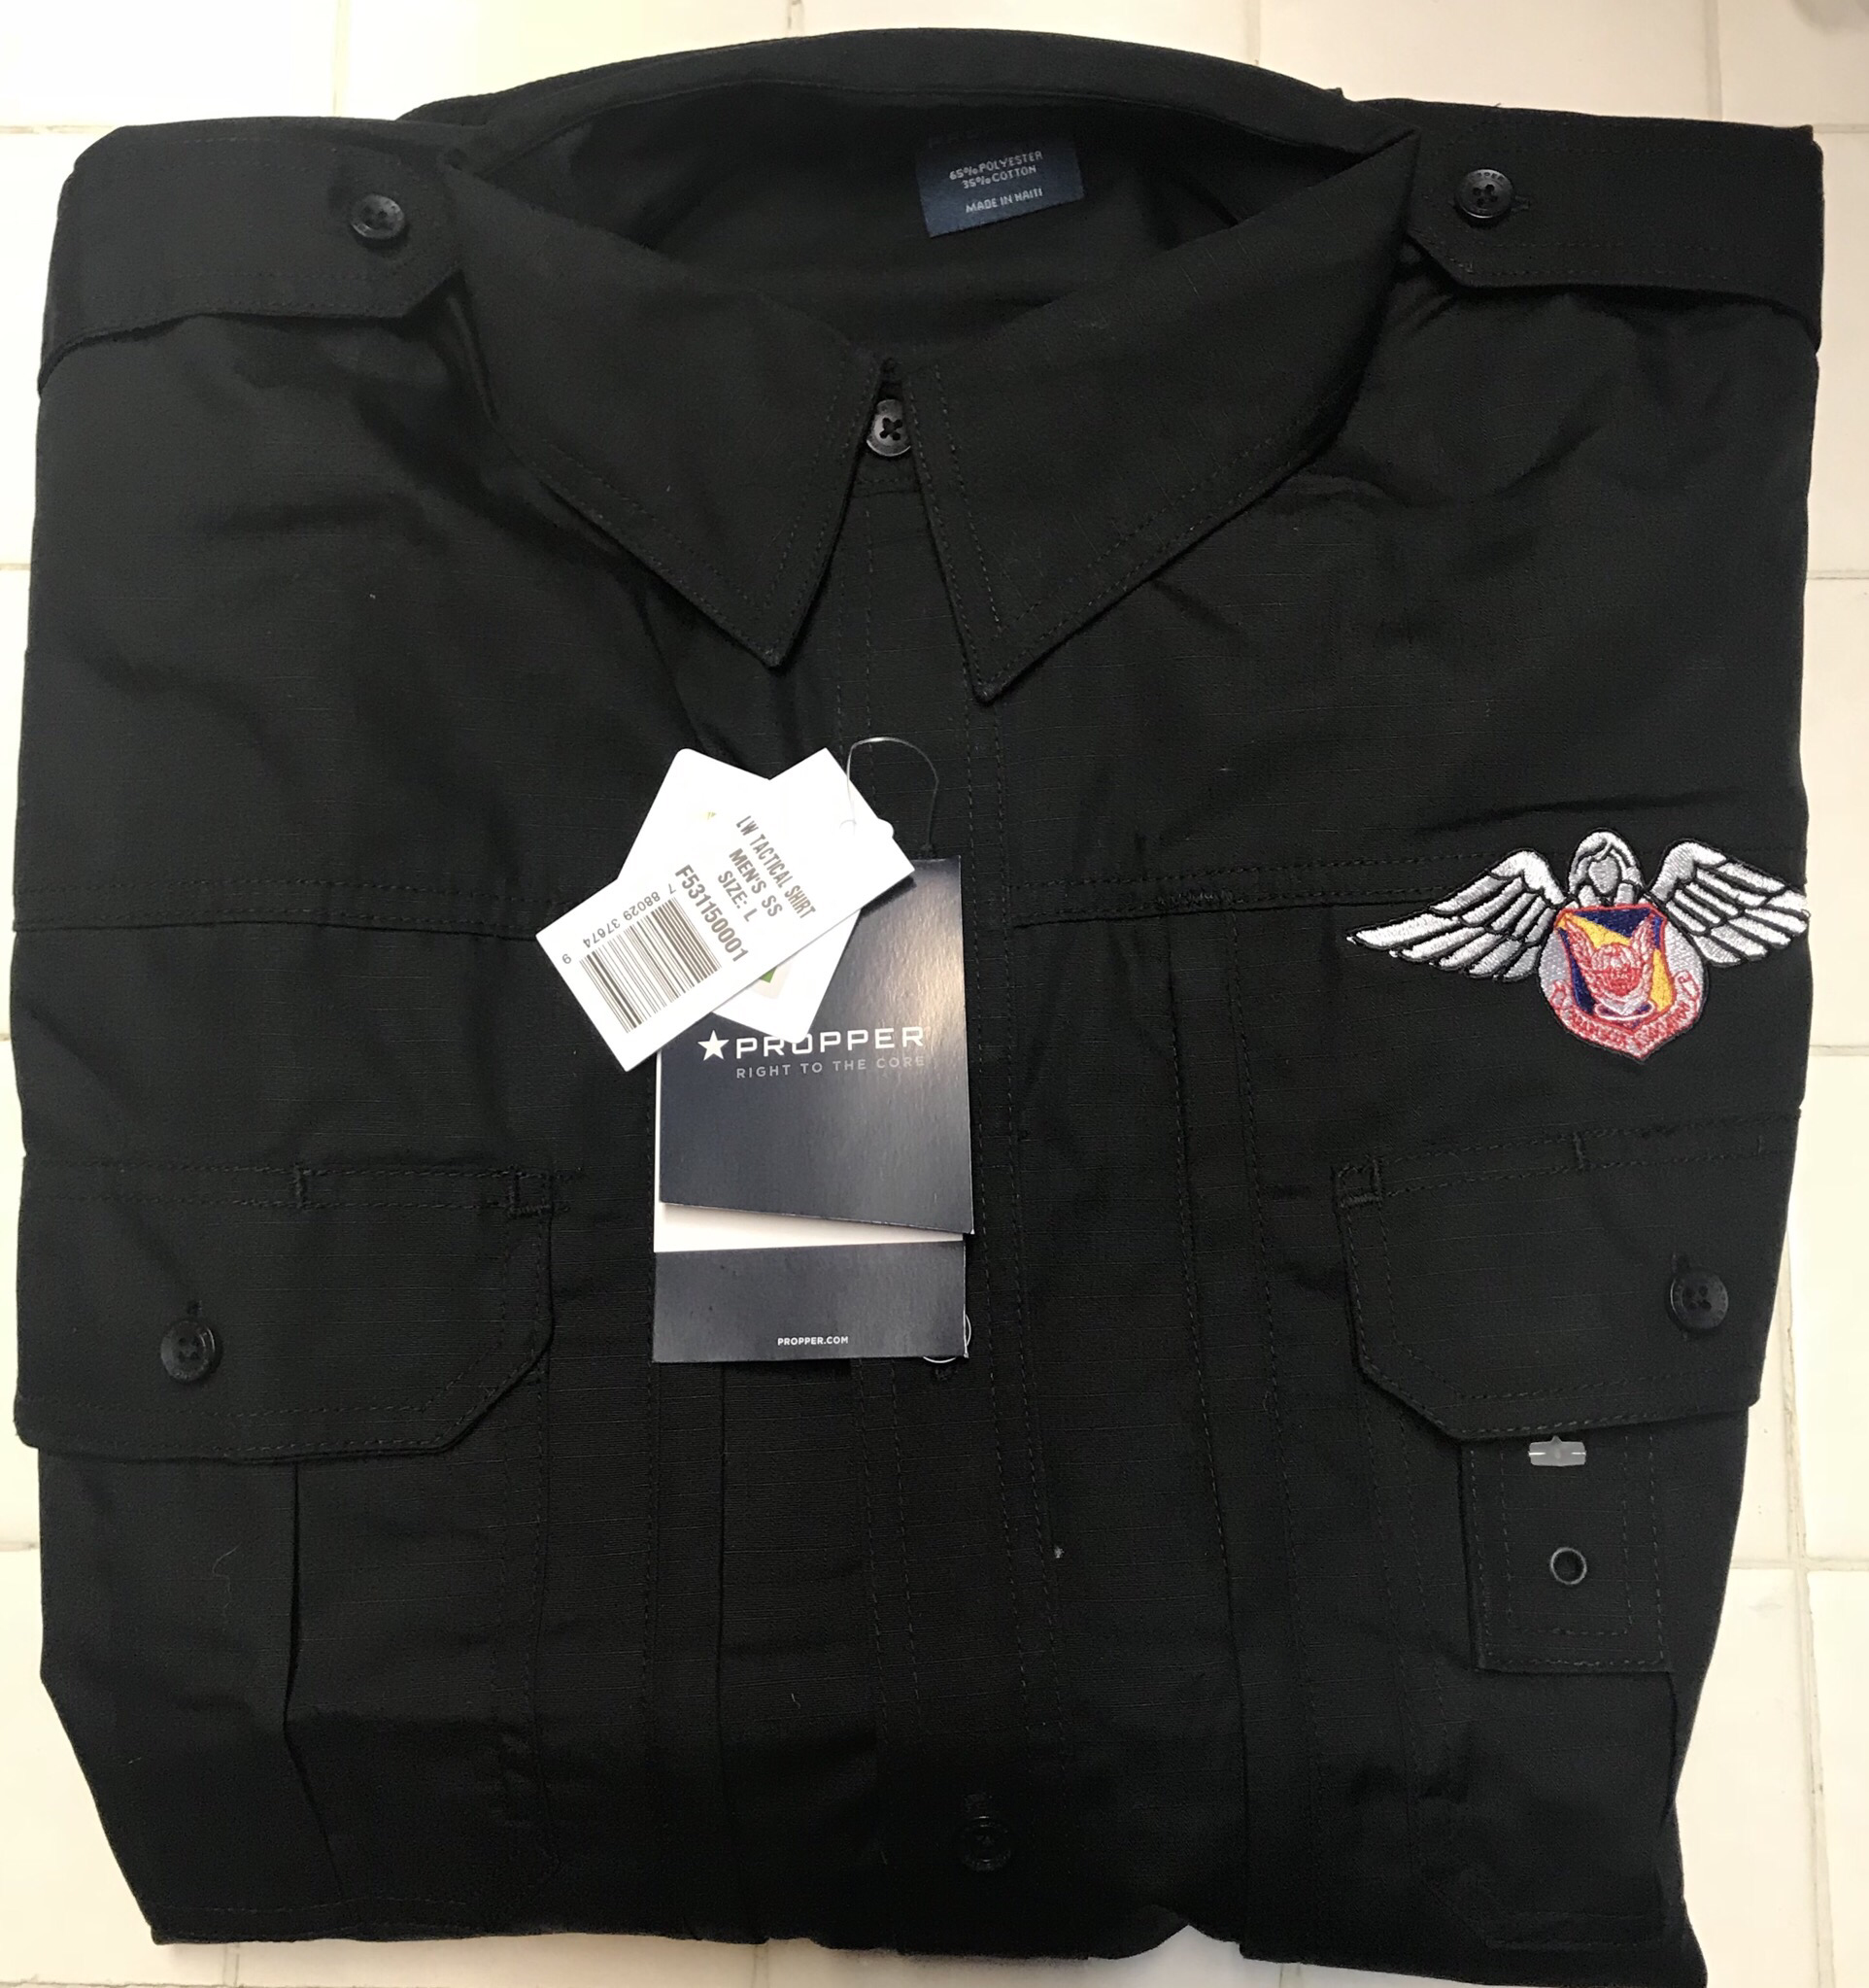 PJ Associaton Black Tactical Short Sleeve Shirt - Large 01-0042